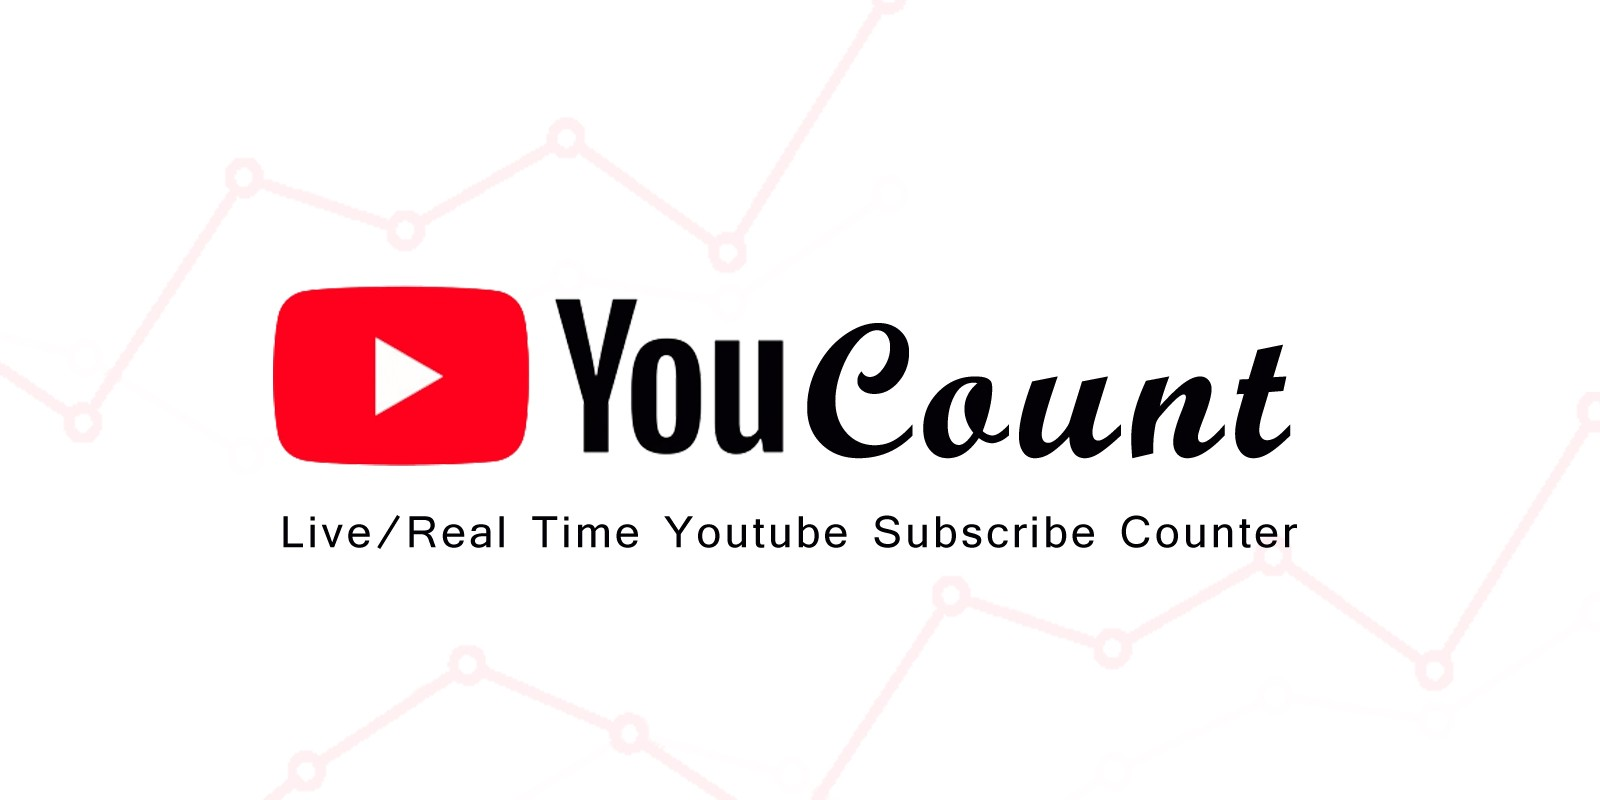 YouCount - Real Time Youtube Subscribe Counter